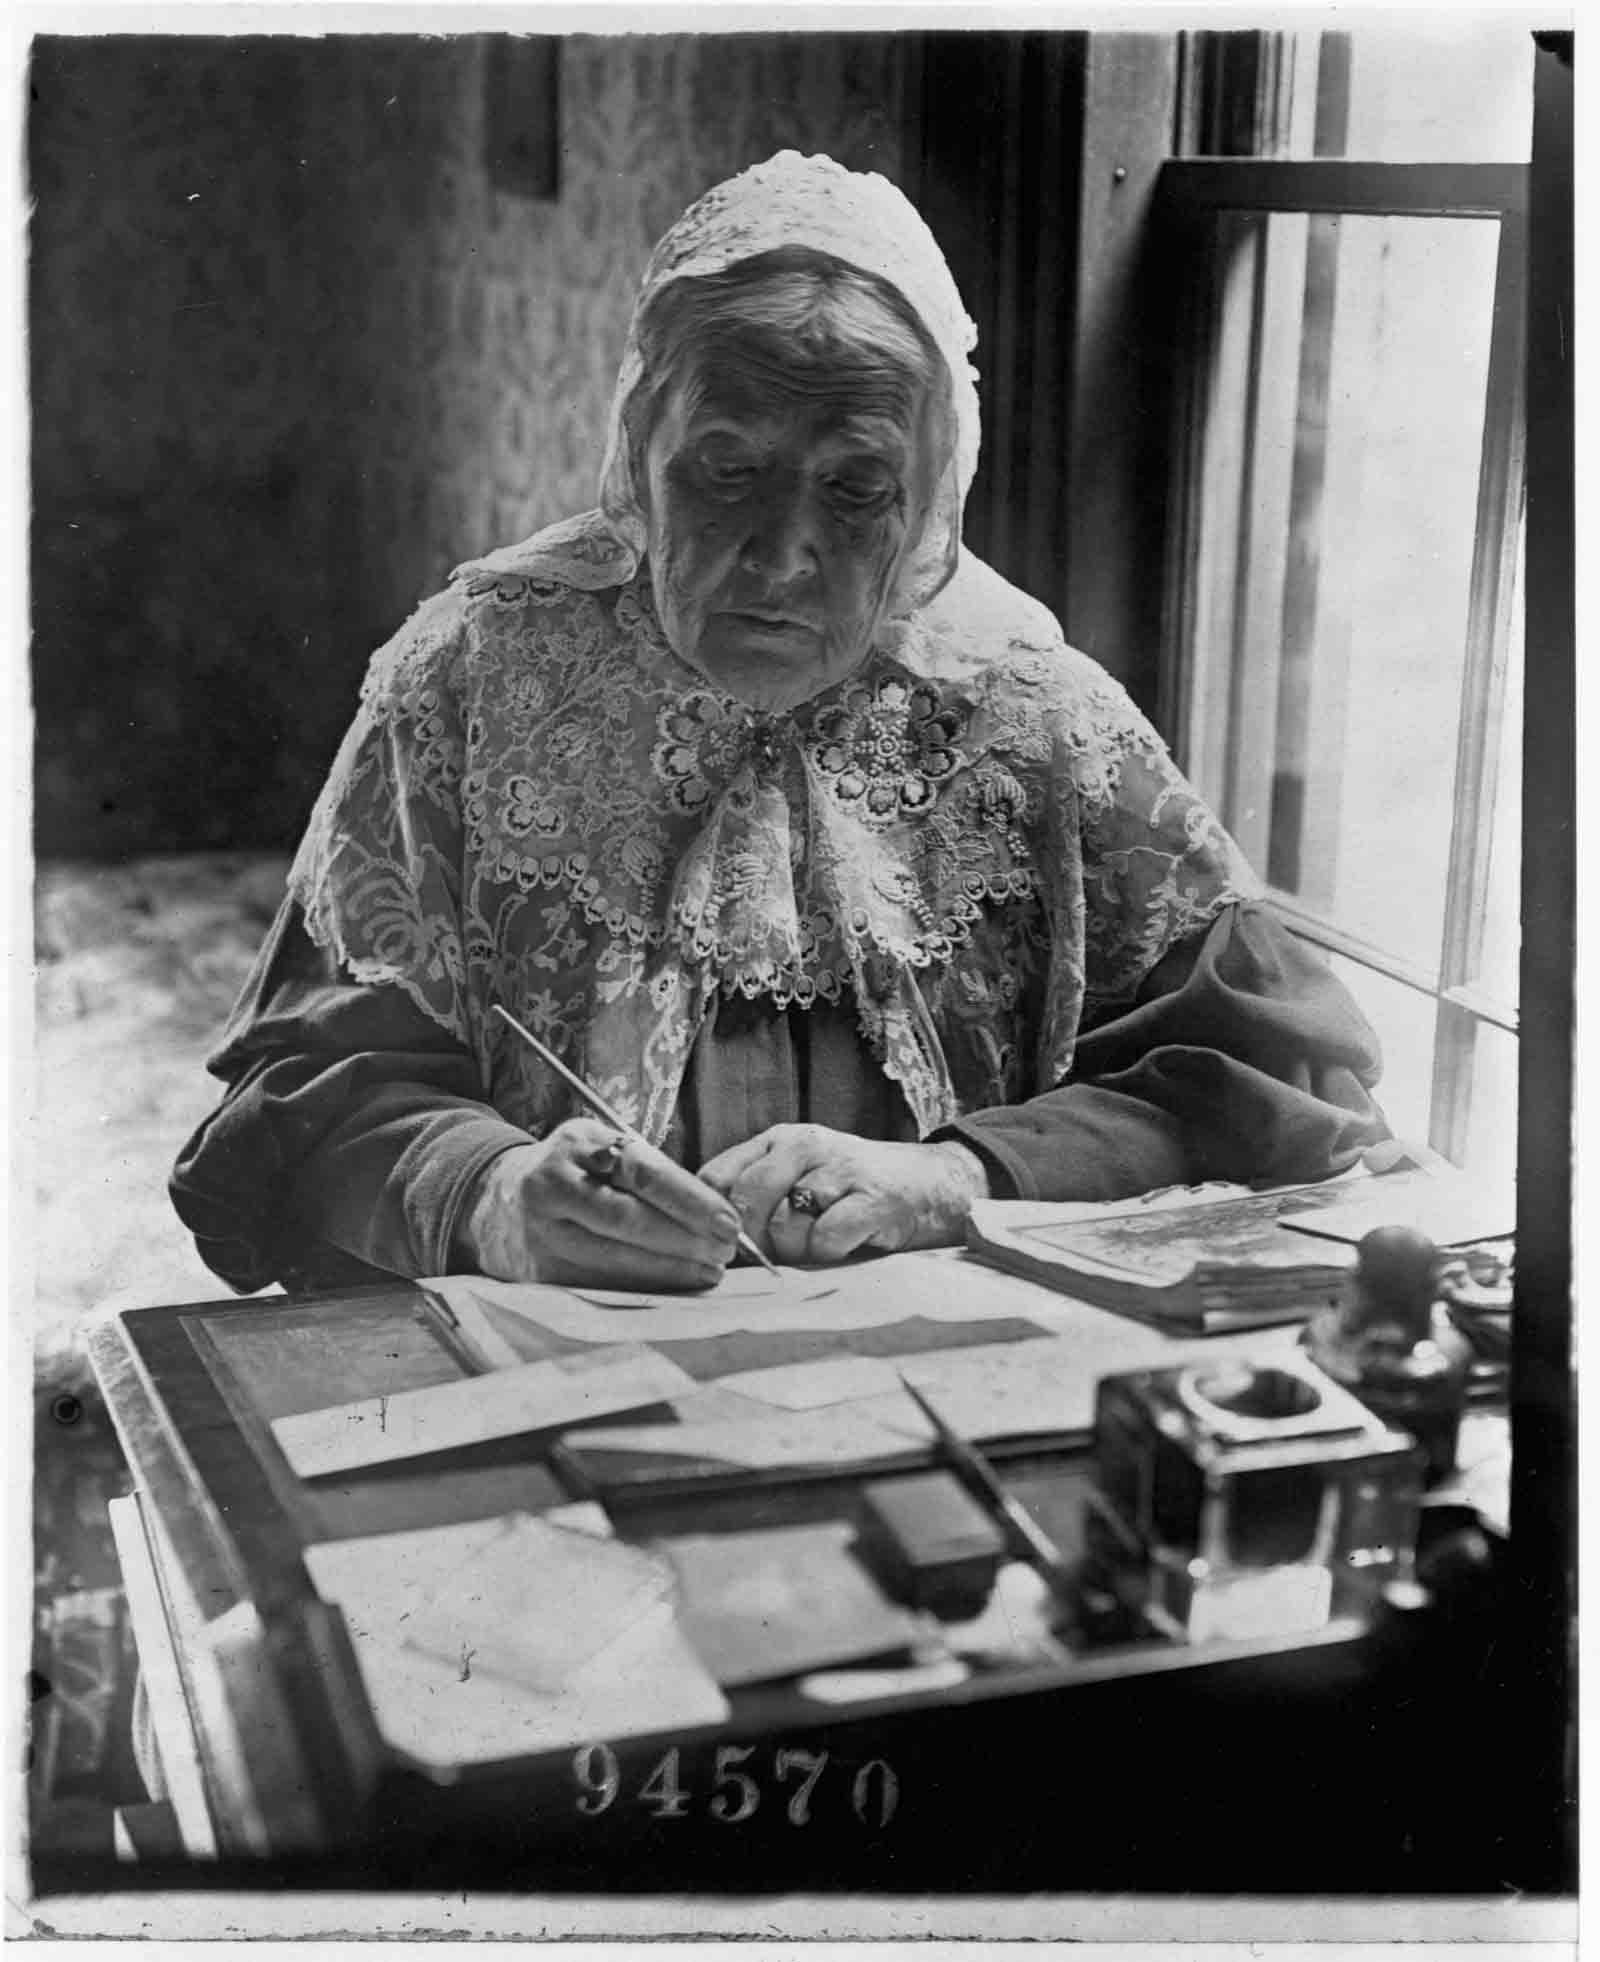 Whitman, Melville, & Julia Ward Howe: A Tale of Three Bicentennials | by Elaine Showalter | The New York Review of Books